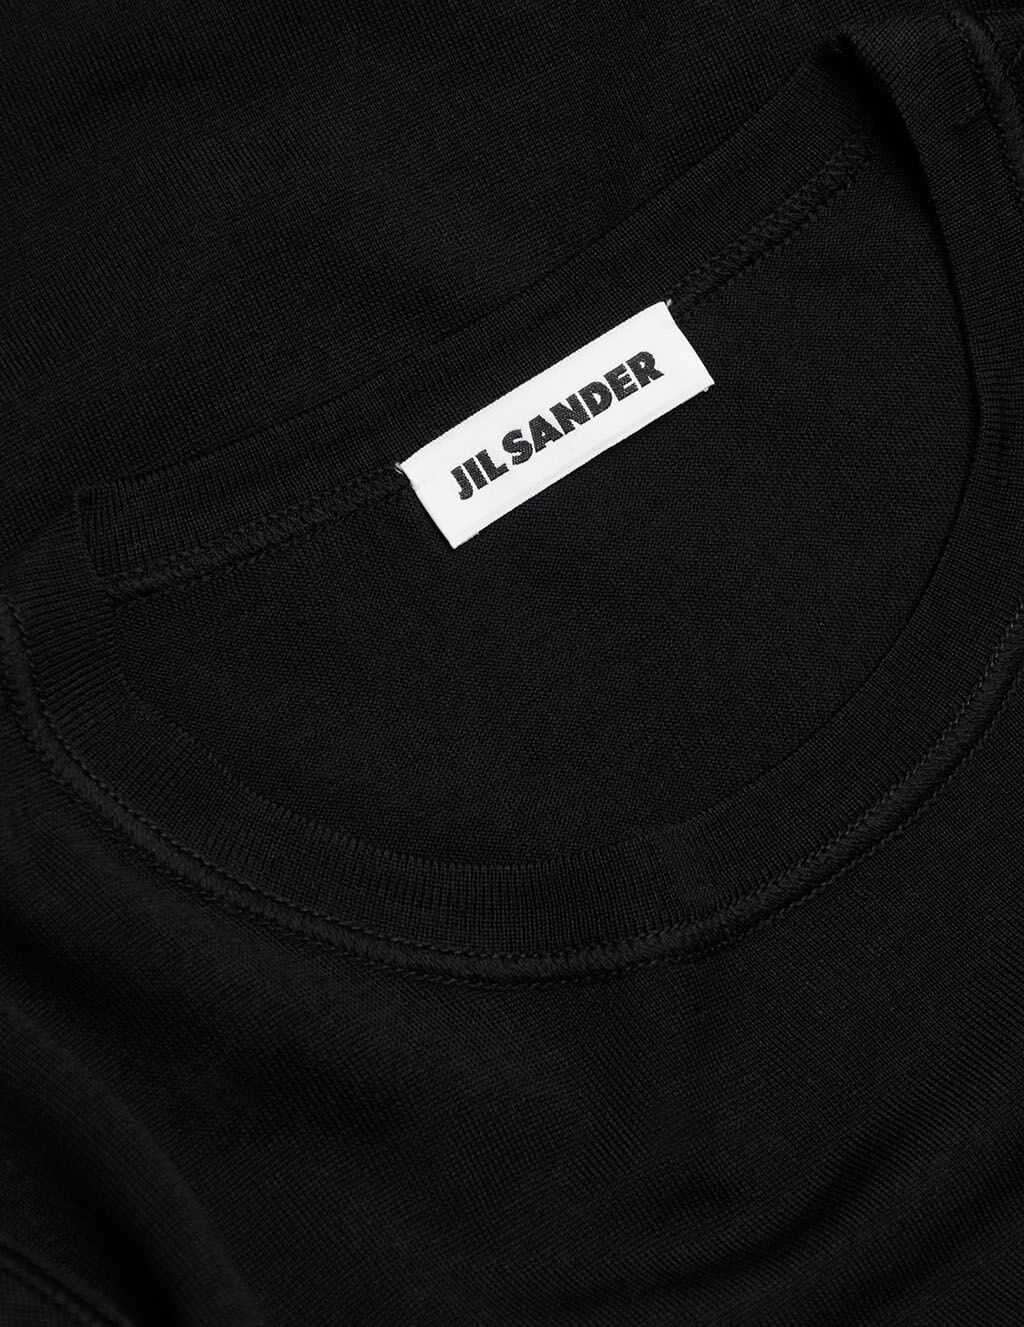 Men's Jil Sander Lightweight Fleece Jumper in Black - JSMS751010-MSY20058-001